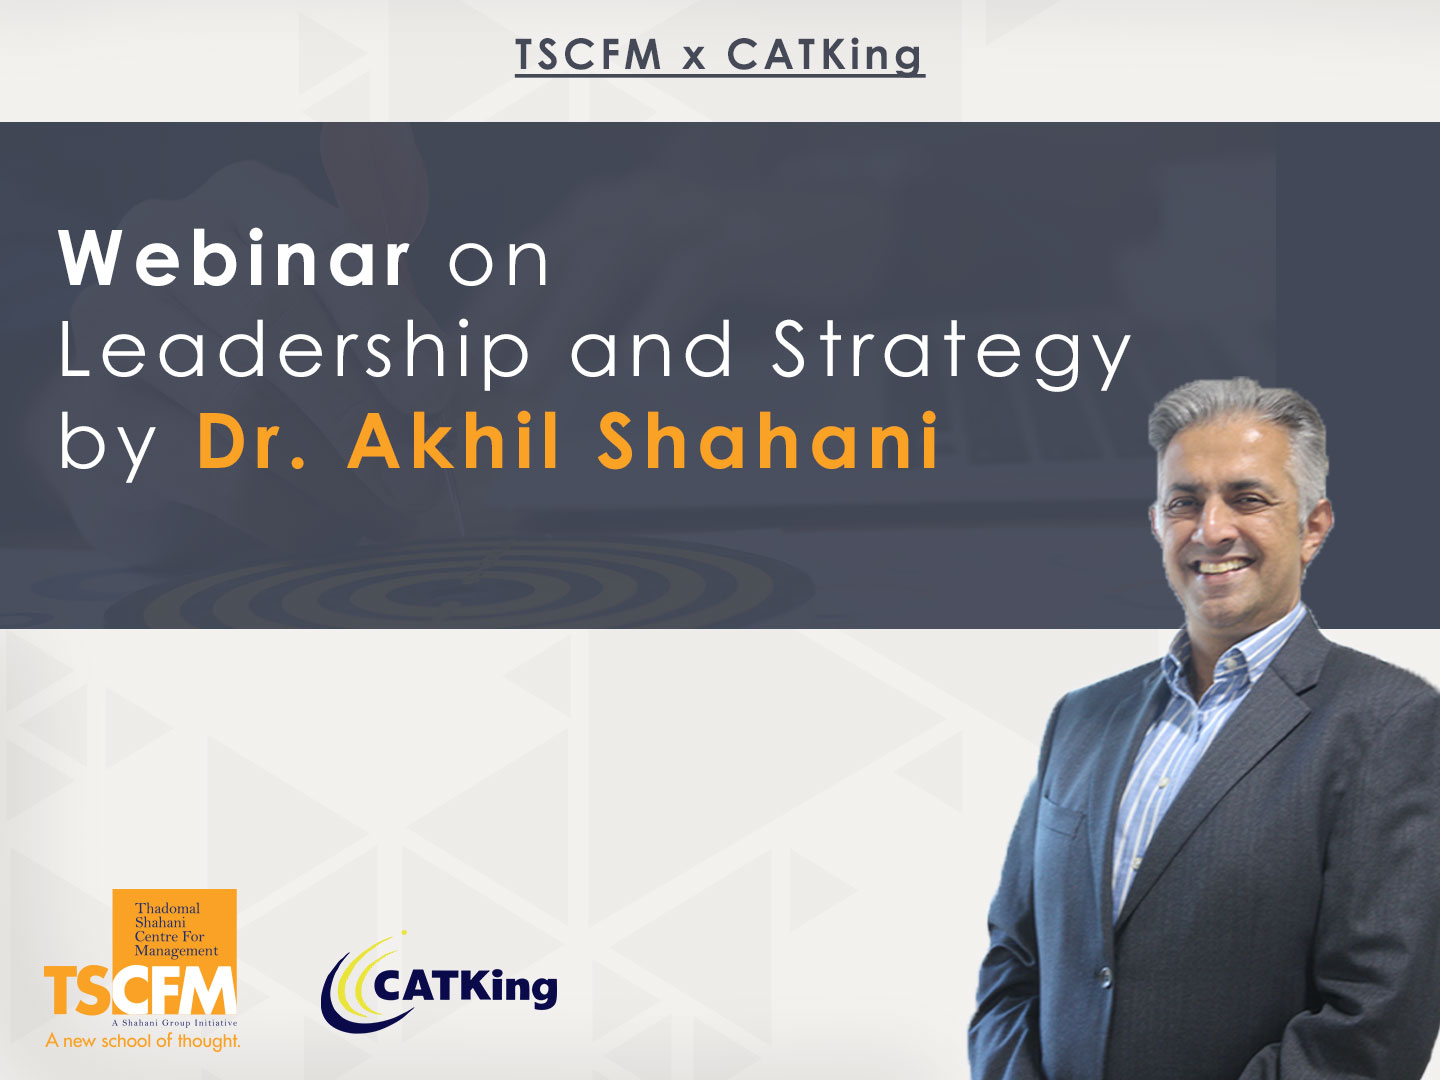 Webinar on Leadership and Strategy by Dr. Akhil Shahani